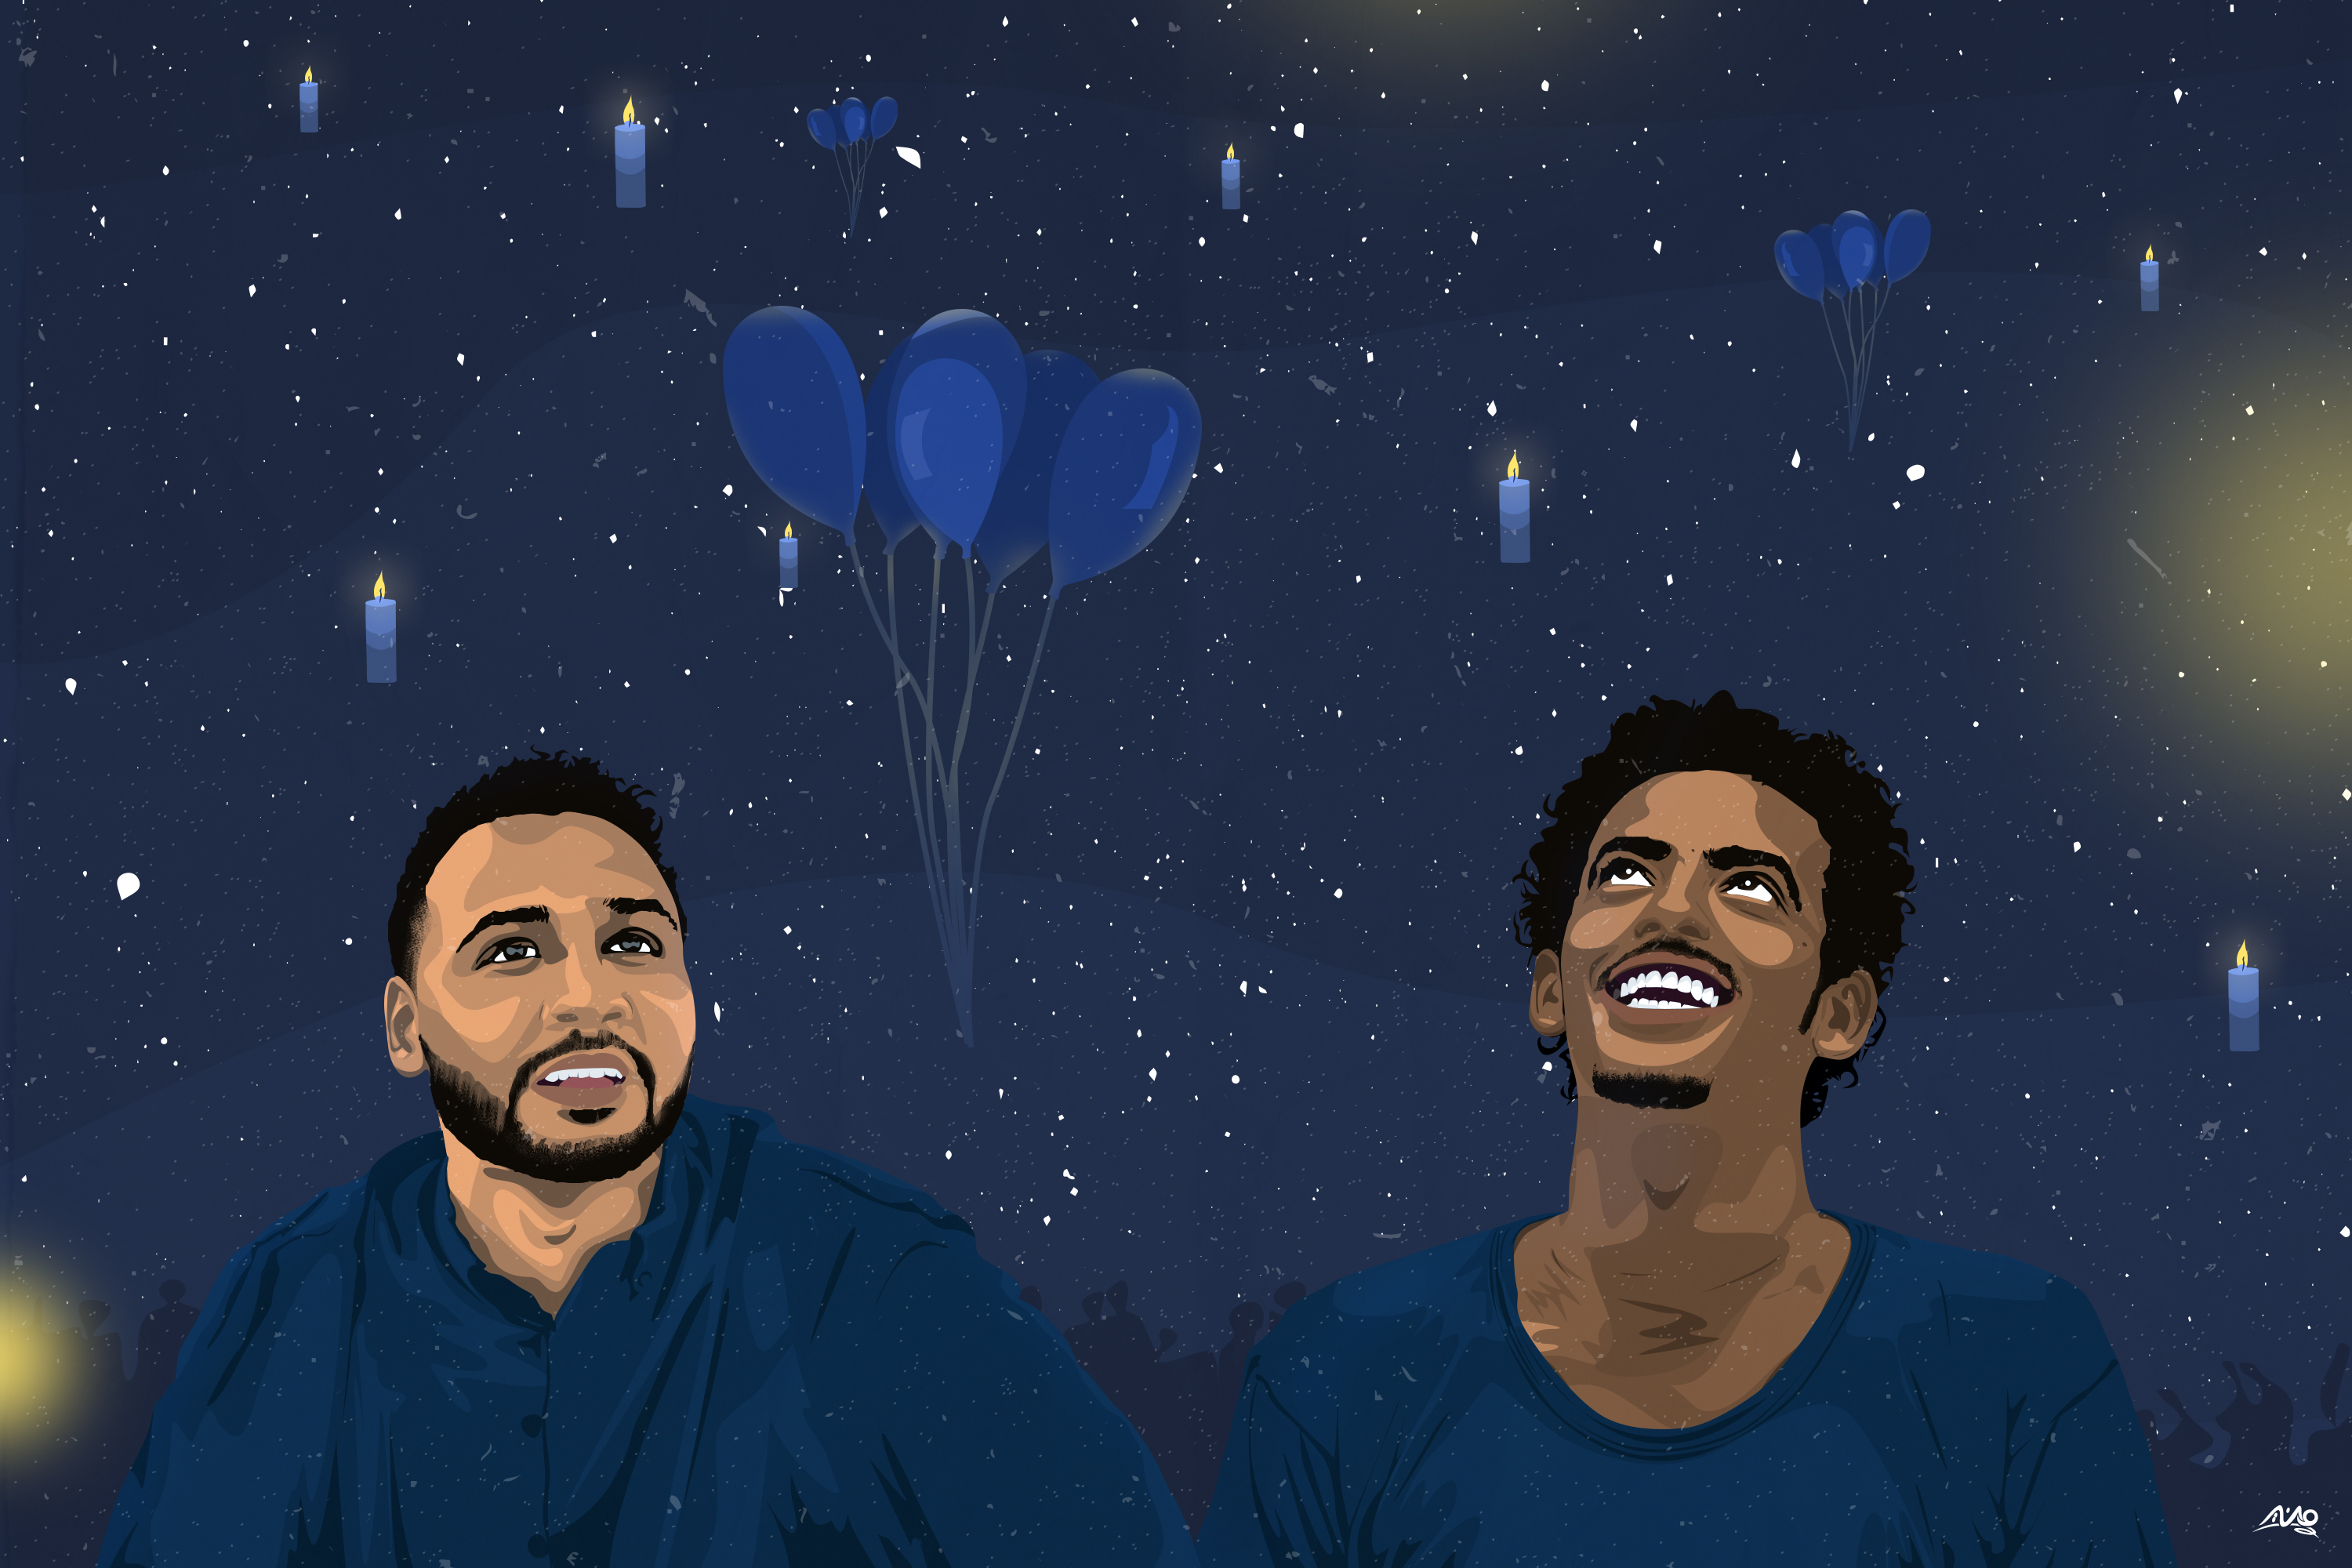 Mounir Khalil Blue Martyrs - smiling Mohamed Mattar and Abdelsalam Kisha surrounded by balloons and stars